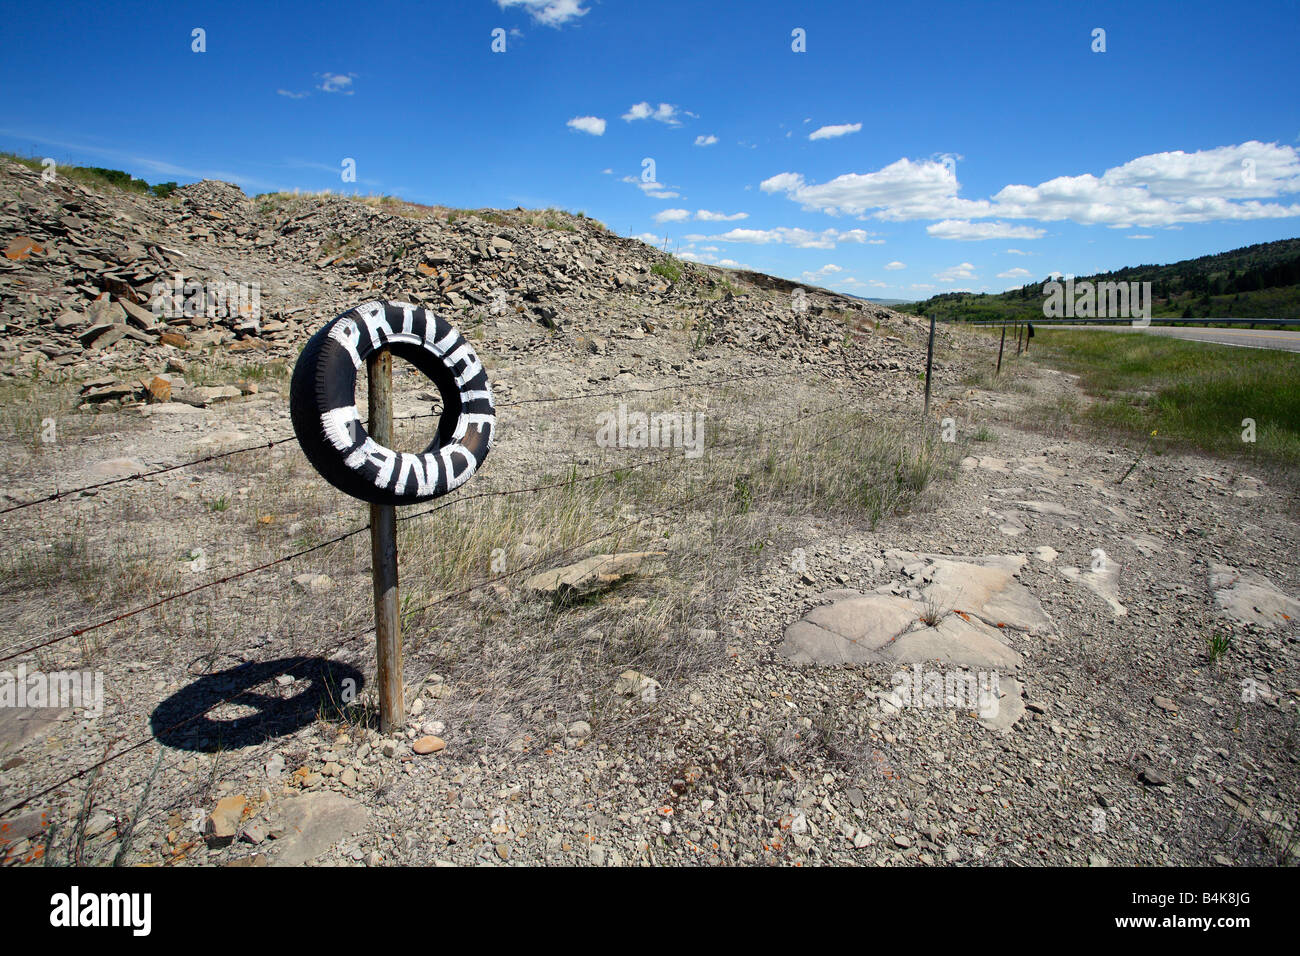 Barbed wire fence with tire sign painted private land near Pincher Creek Alberta Canada - Stock Image